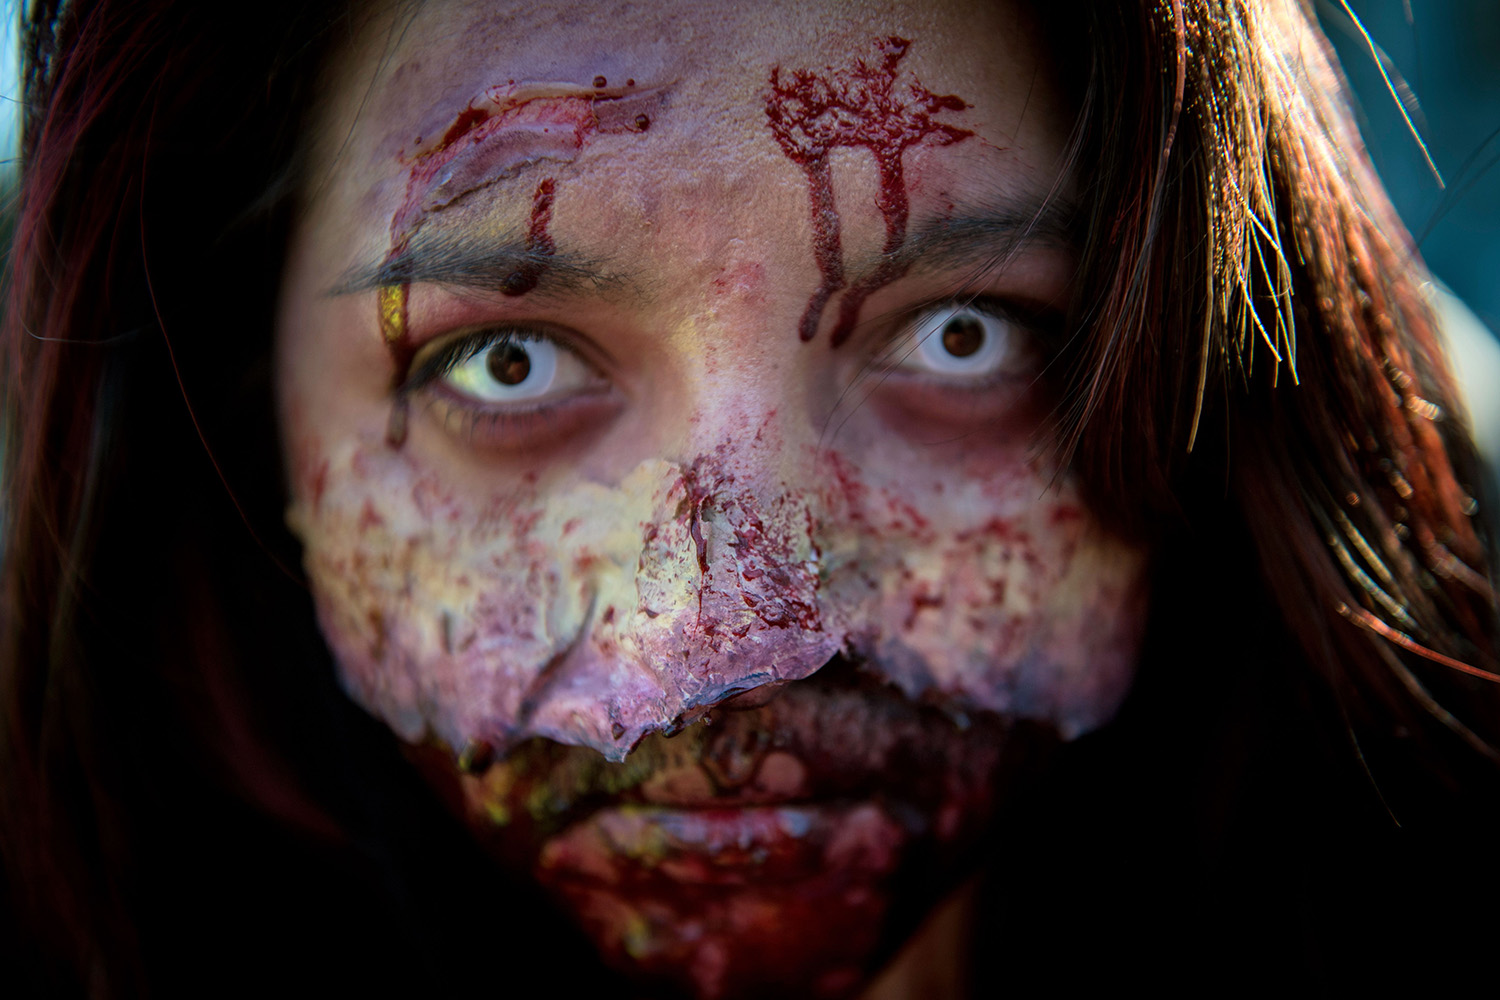 TOPSHOT - Chilean students take part in a parade within the upcoming Halloween celebration, in Santiago, on October 25, 2017. / AFP PHOTO / Martin BERNETTI        (Photo credit should read MARTIN BERNETTI/AFP/Getty Images)